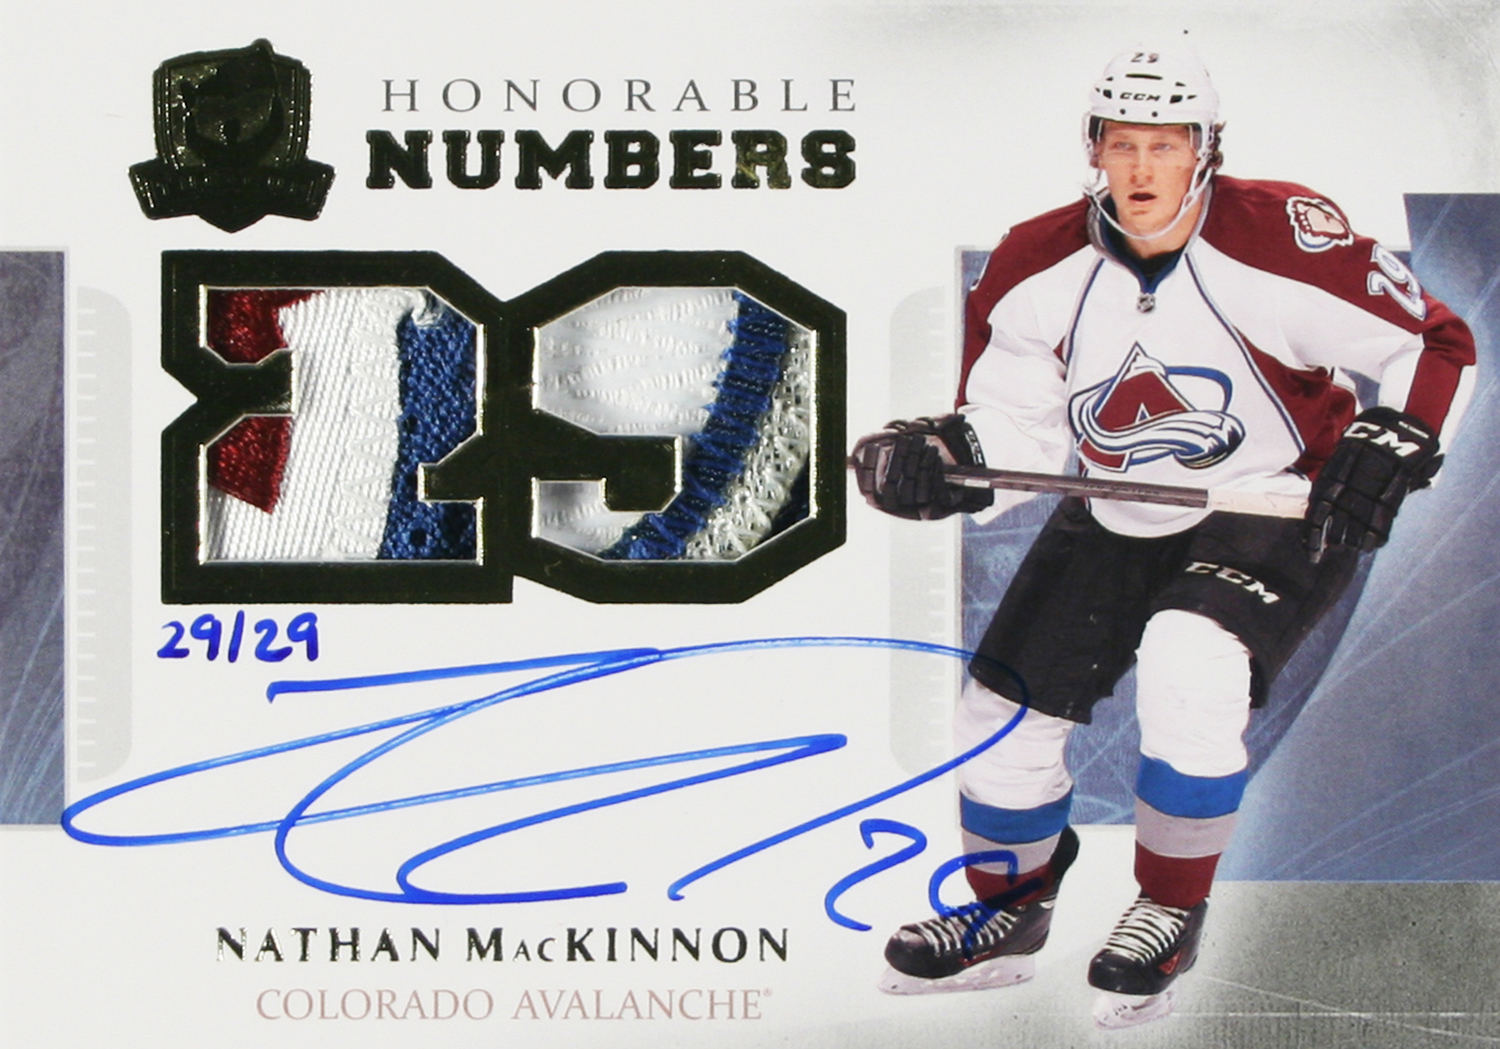 2013-14-NHL-The-Cup-Upper-Deck-Honorable-Numbers-Autograph-Patch-Nathan-MacKinnon (1)